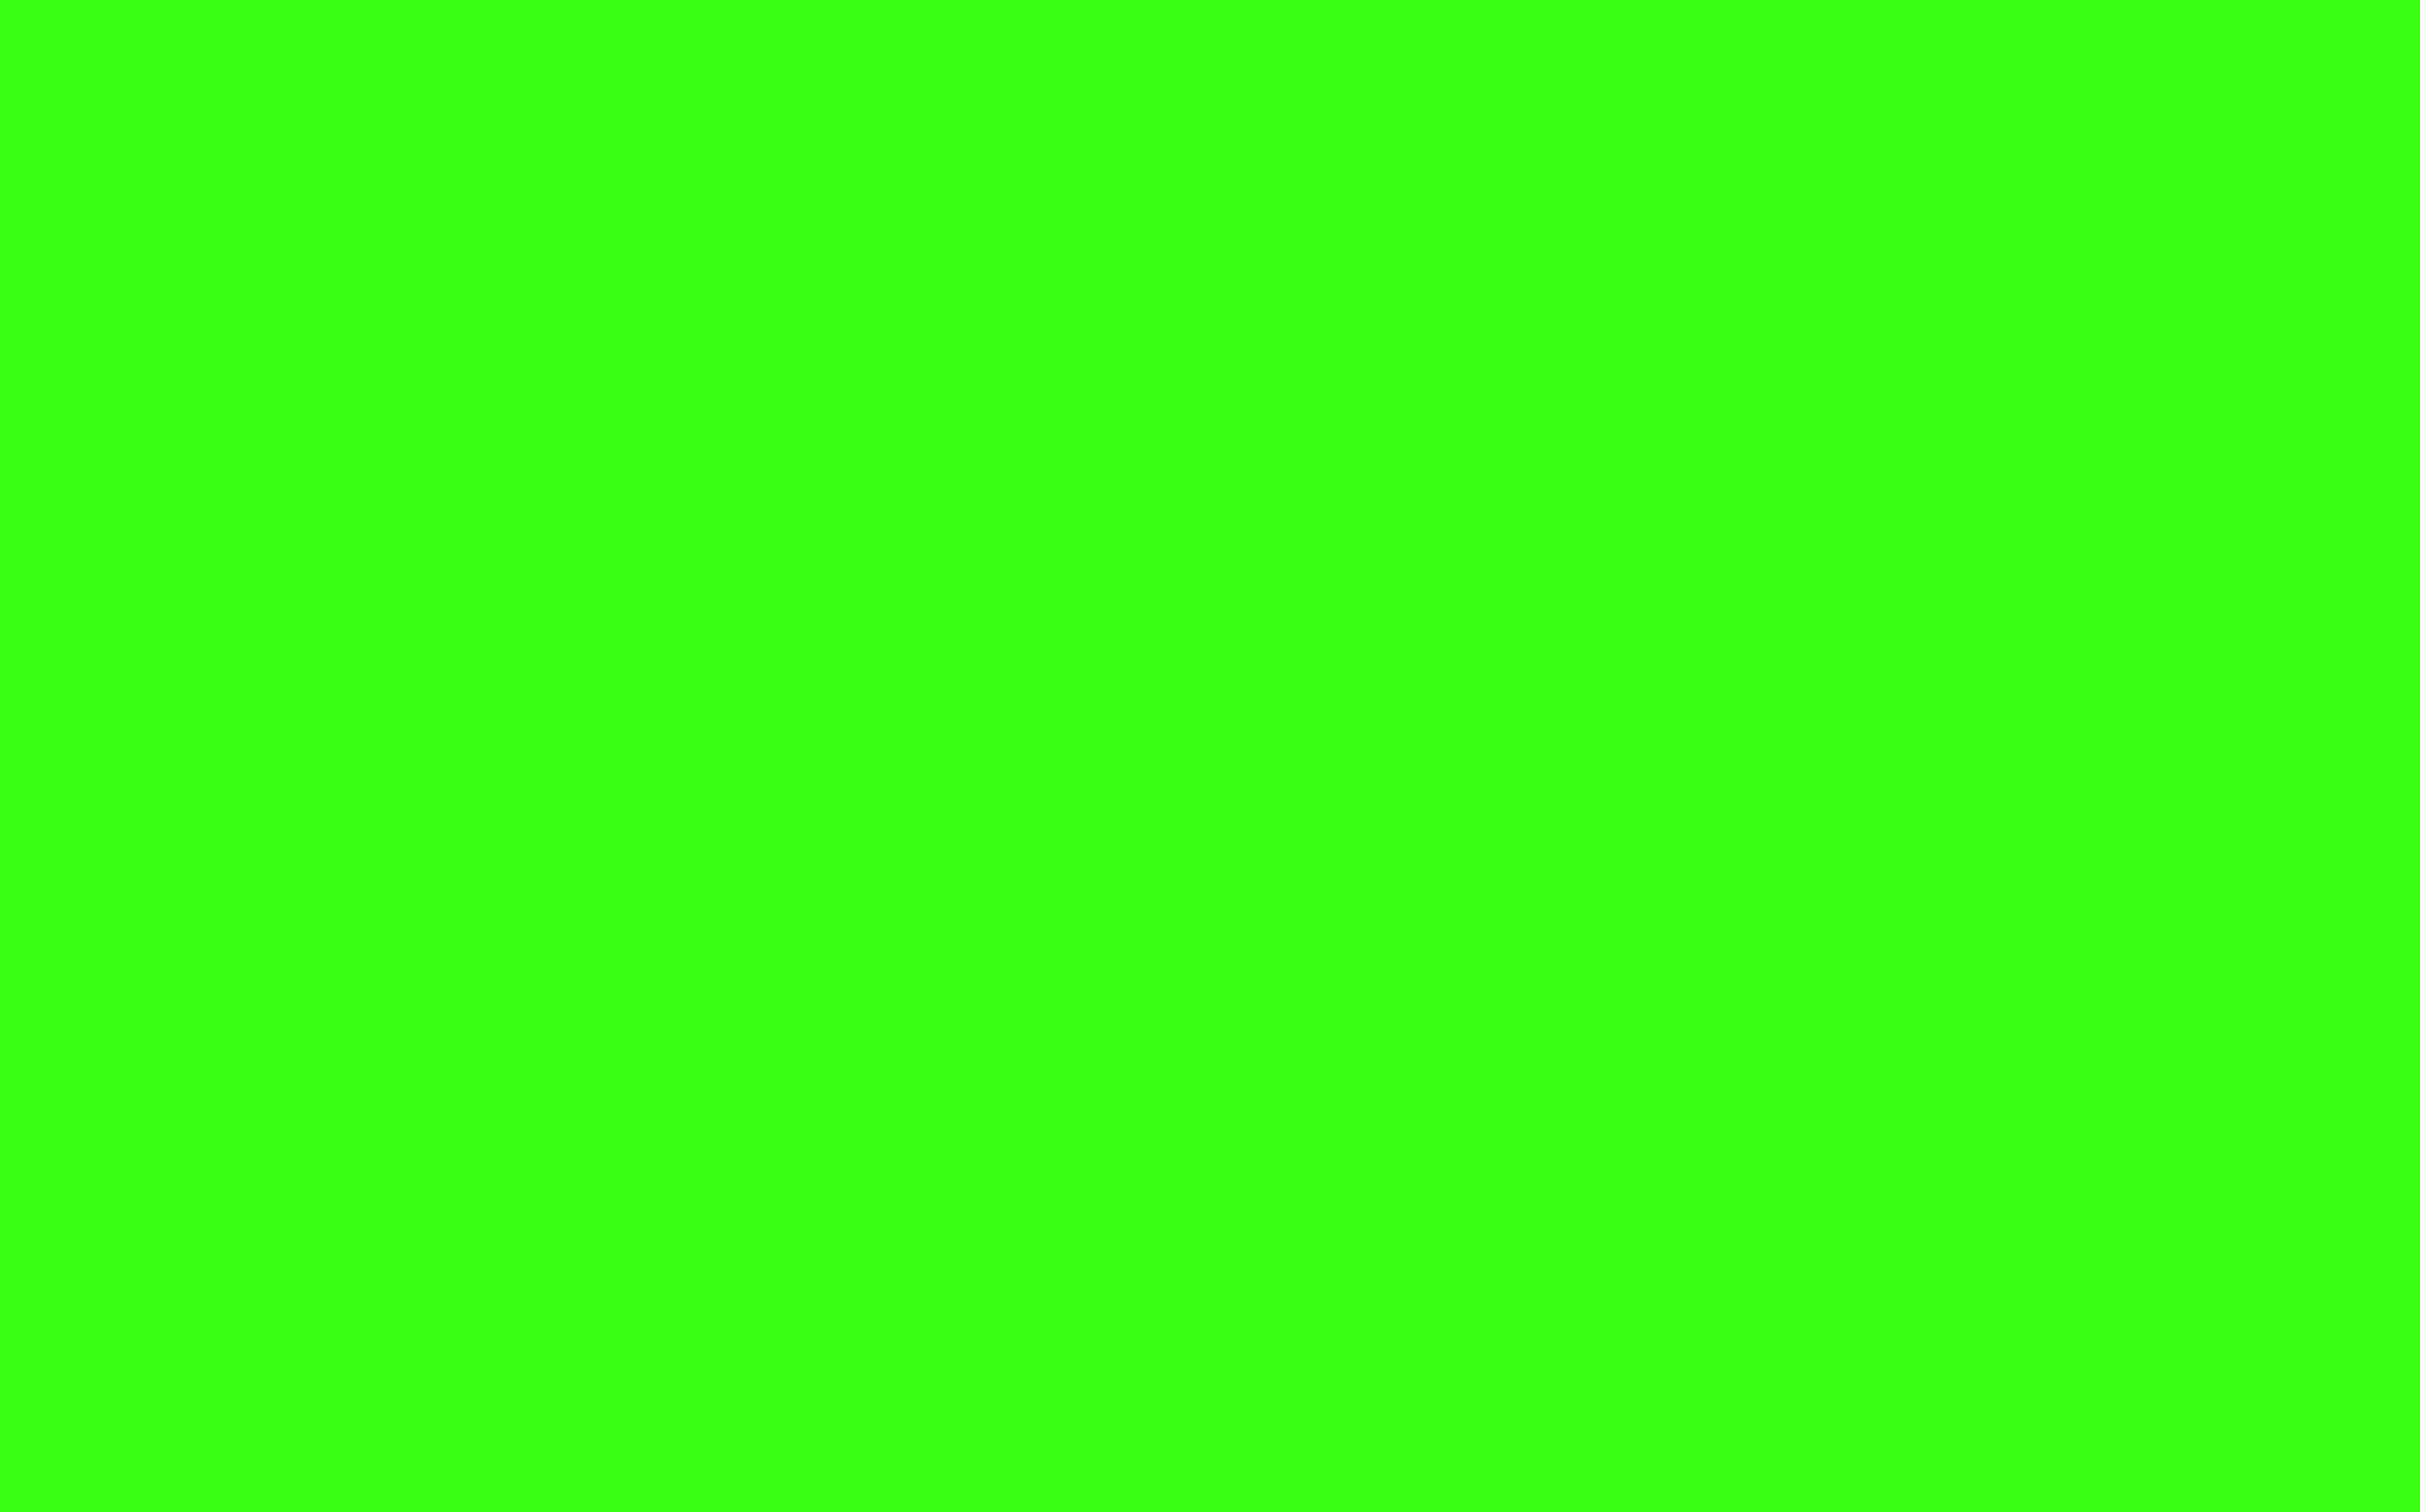 Solid Neon Green Background 2880x1800 neon green solid 2880x1800